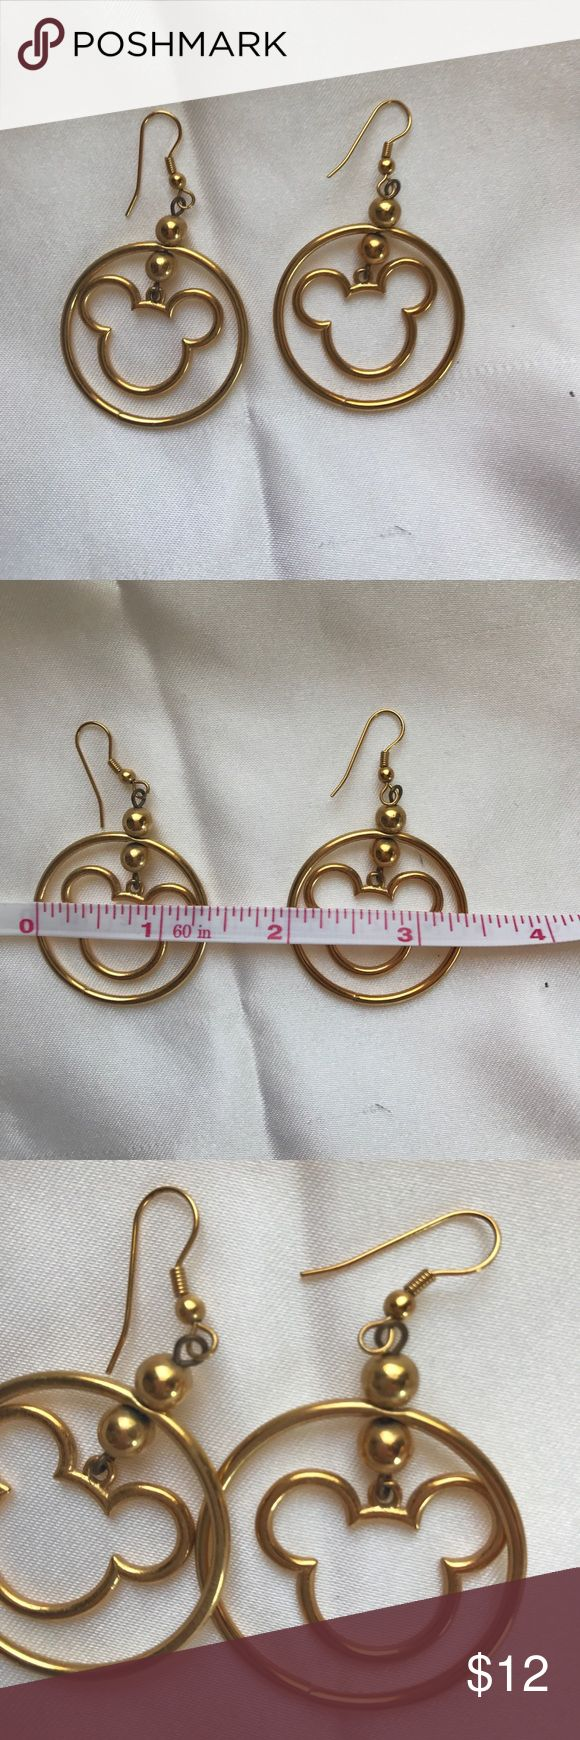 """Gold tone Mickey mouse earrings Round hoop with Mickey silhouette. Over 1"""" diameter. Pre-loved. Small amount of wear/tarnish, see photos. Jewelry Earrings"""